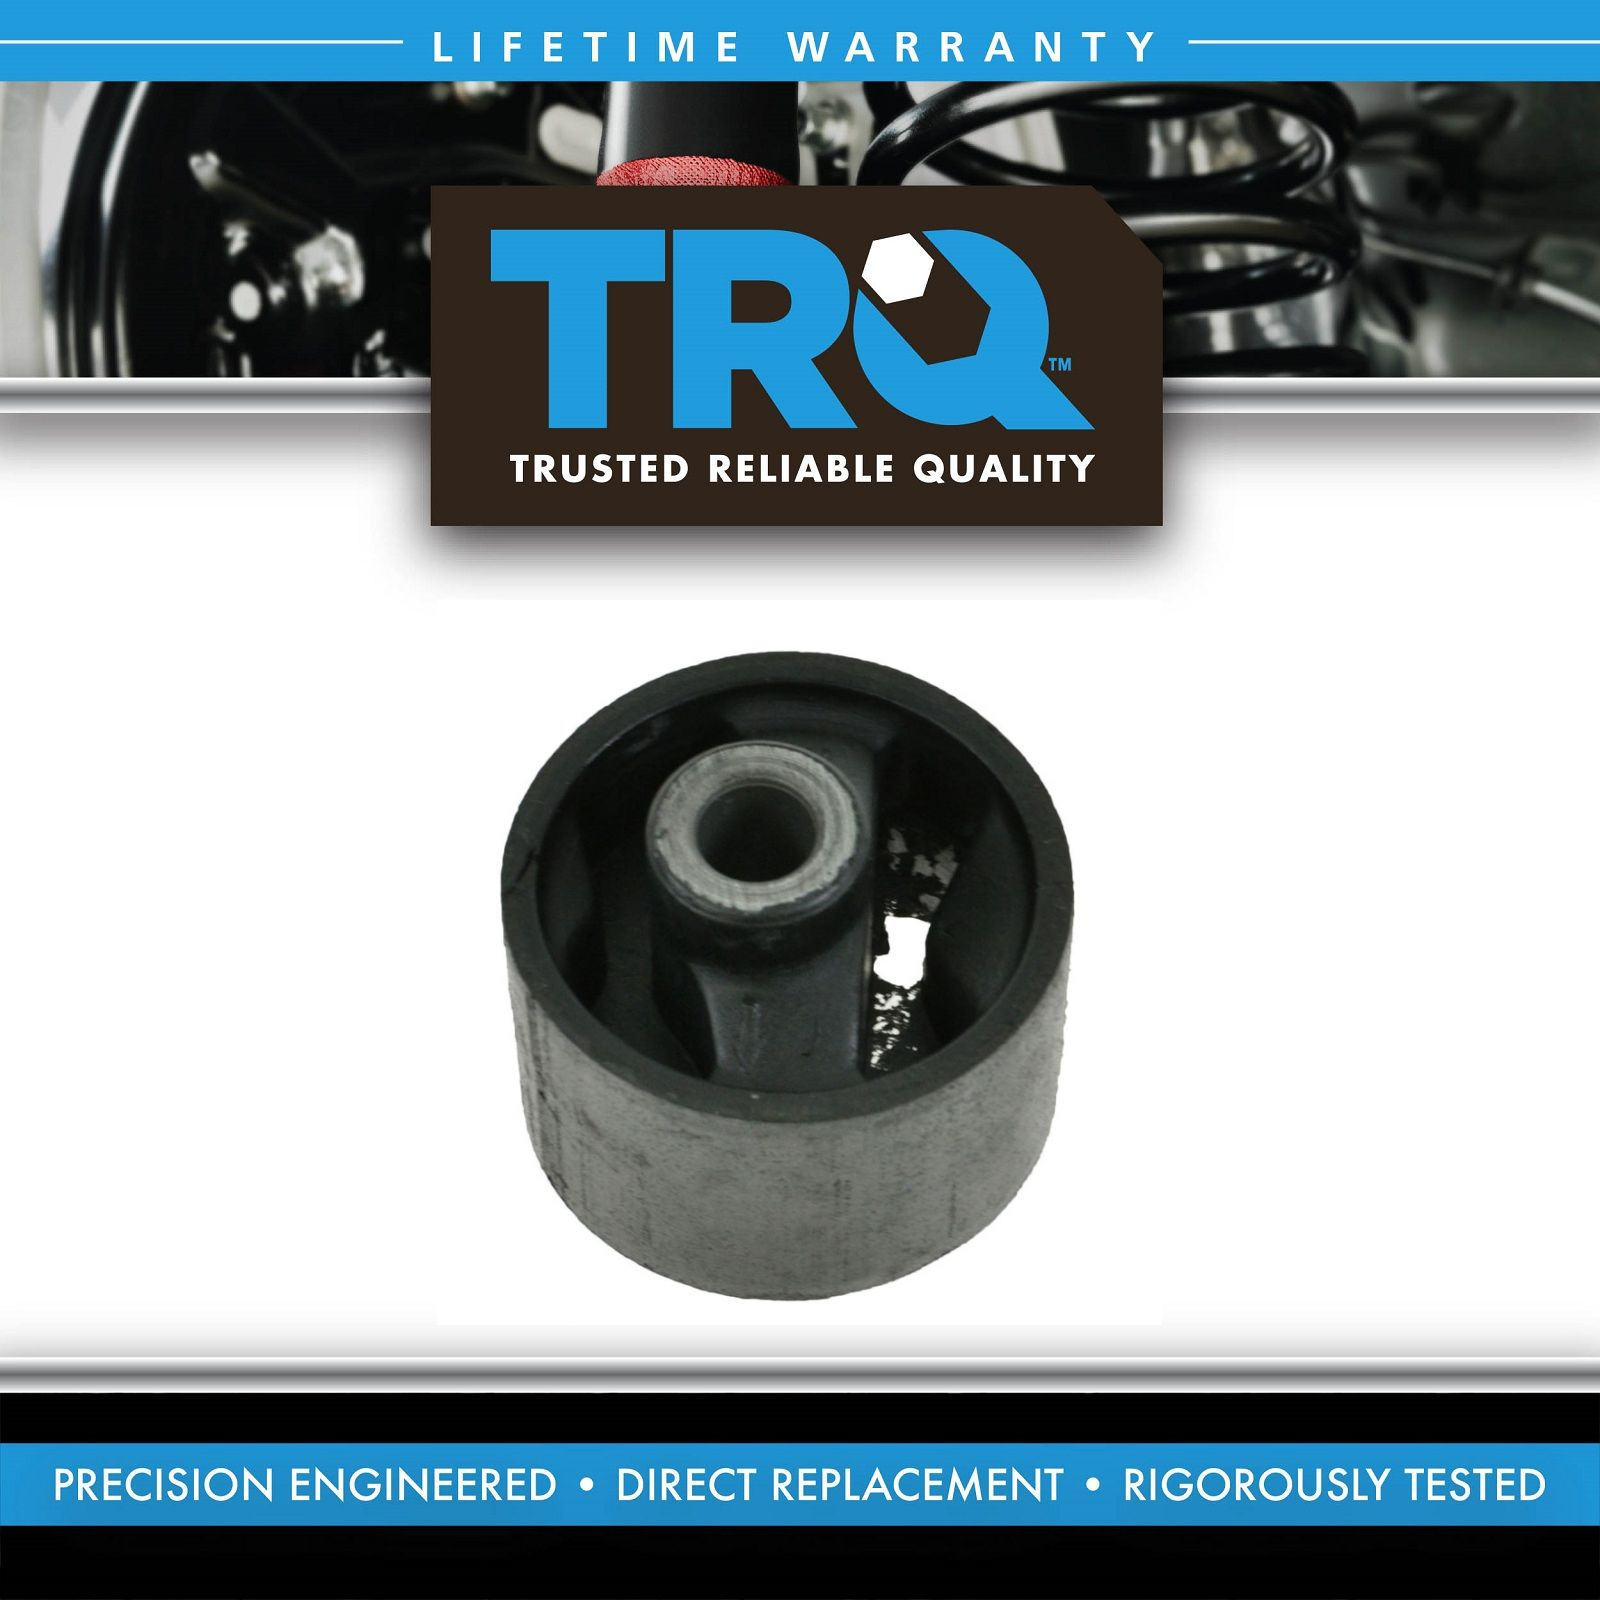 Front Strut Replacement Cost >> Engine Mount Torque Strut Arm Bushing for Volvo 850 C70 S70 V70 2.3 2.4 | eBay